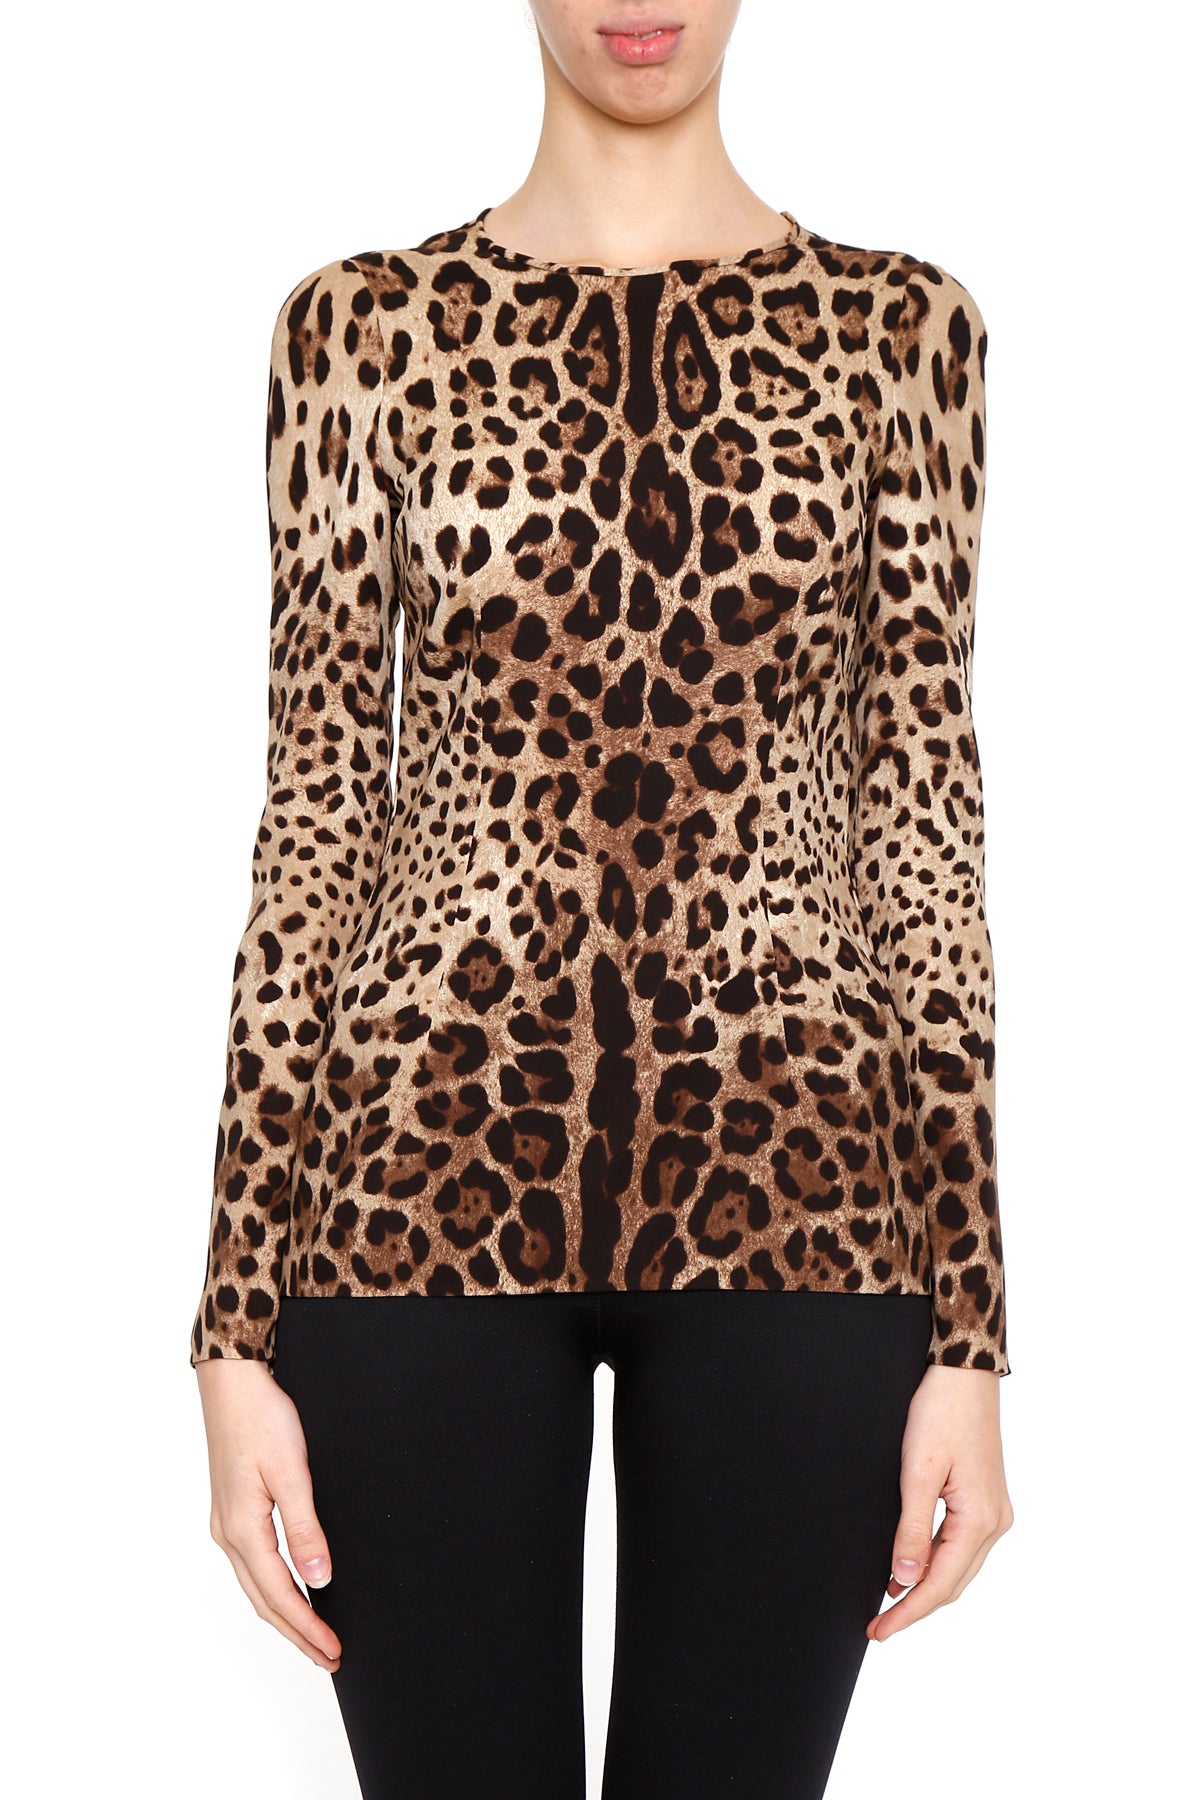 DOLCE & GABBANA FLARED LEOPARD STRETCH TOP